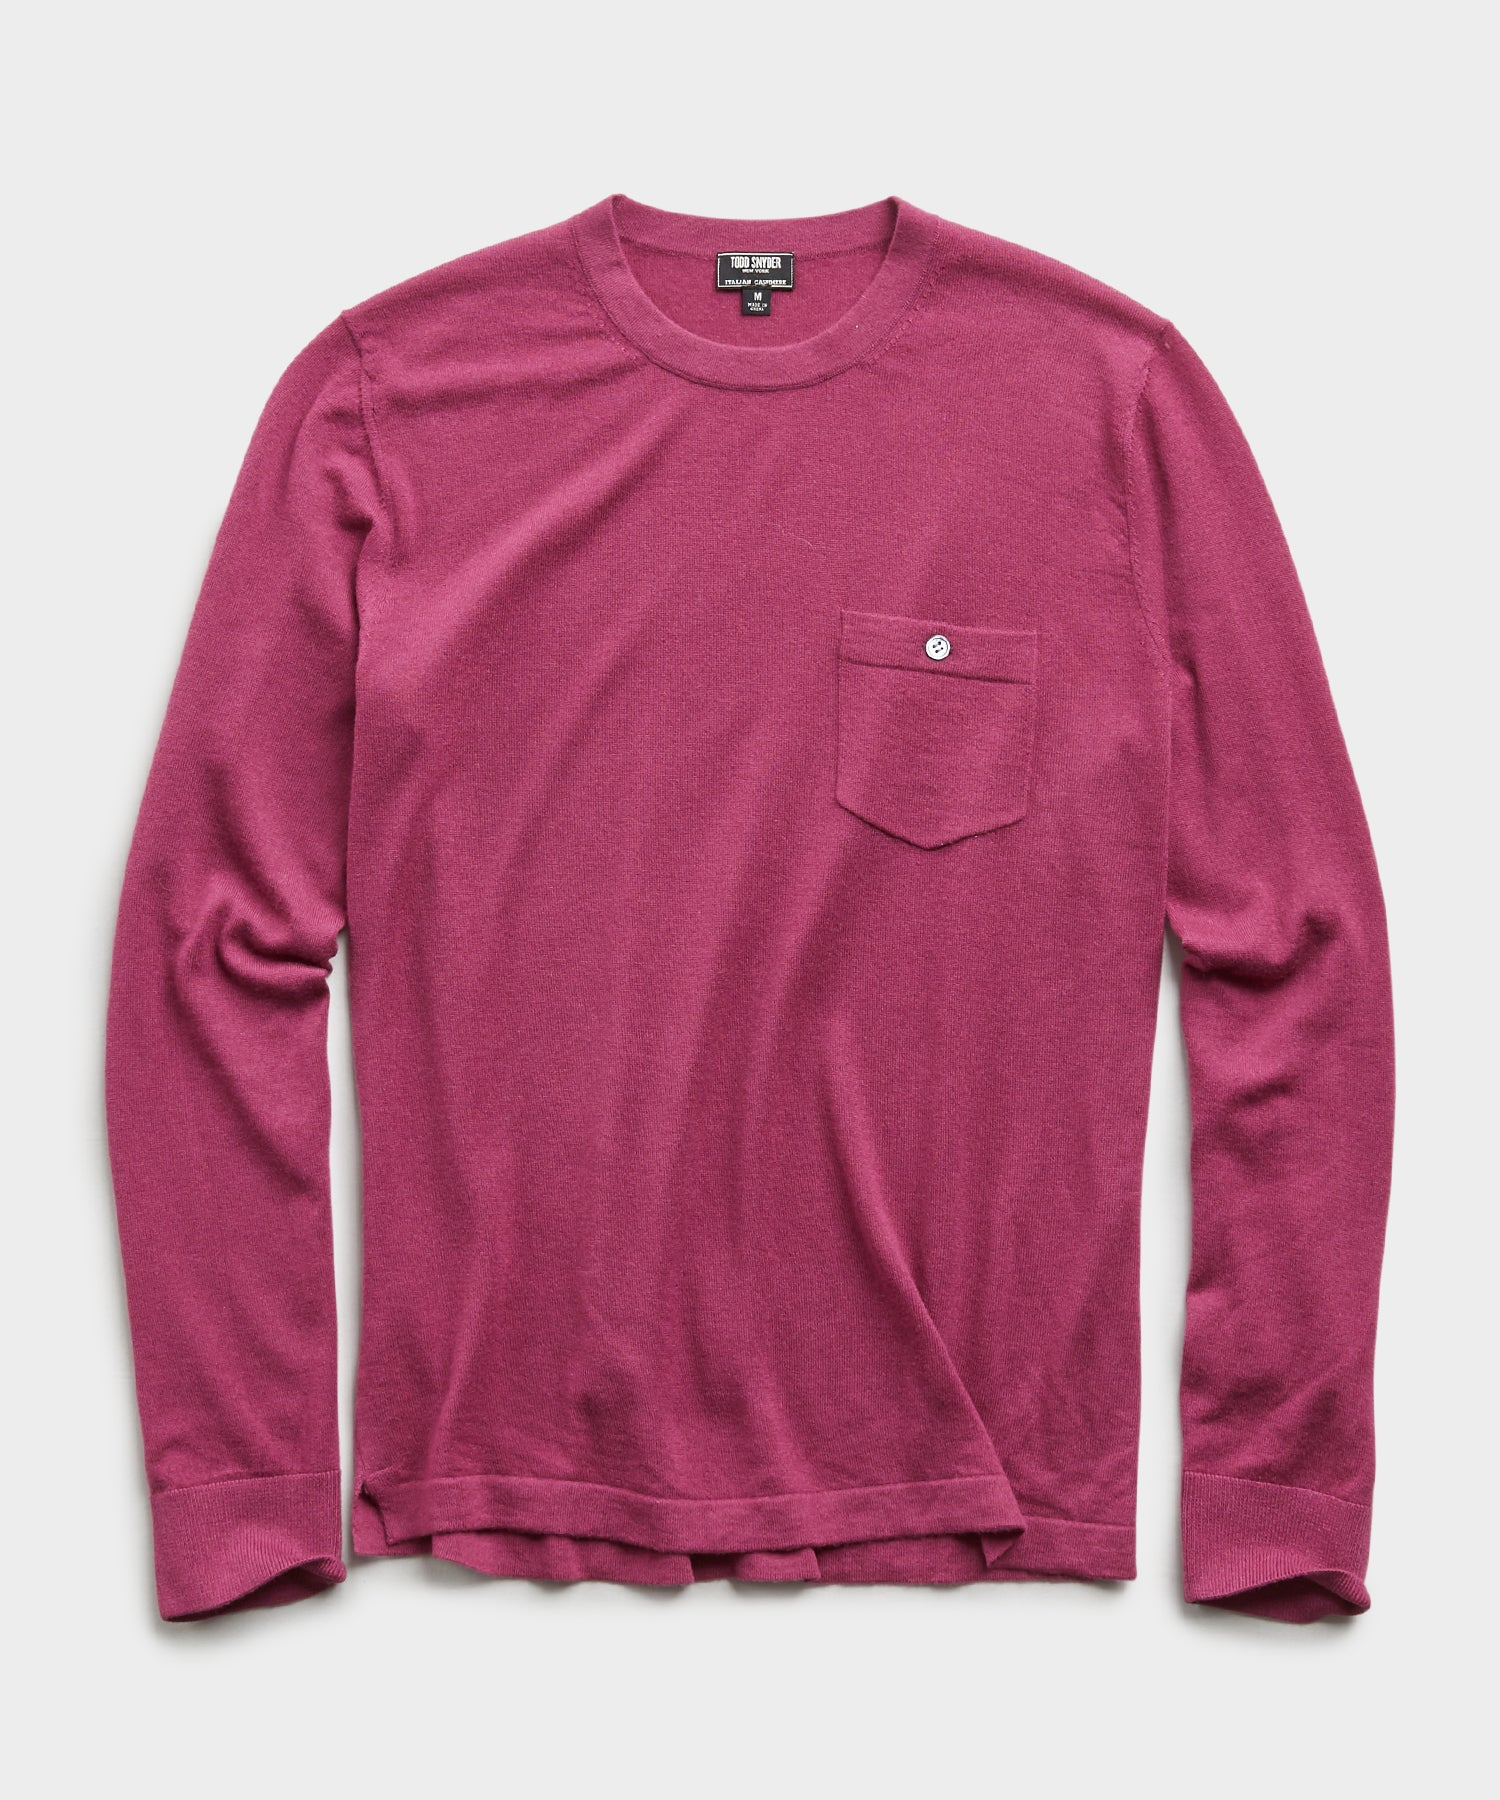 Italian Cashmere Pocket T-Shirt Sweater in Magenta Mist